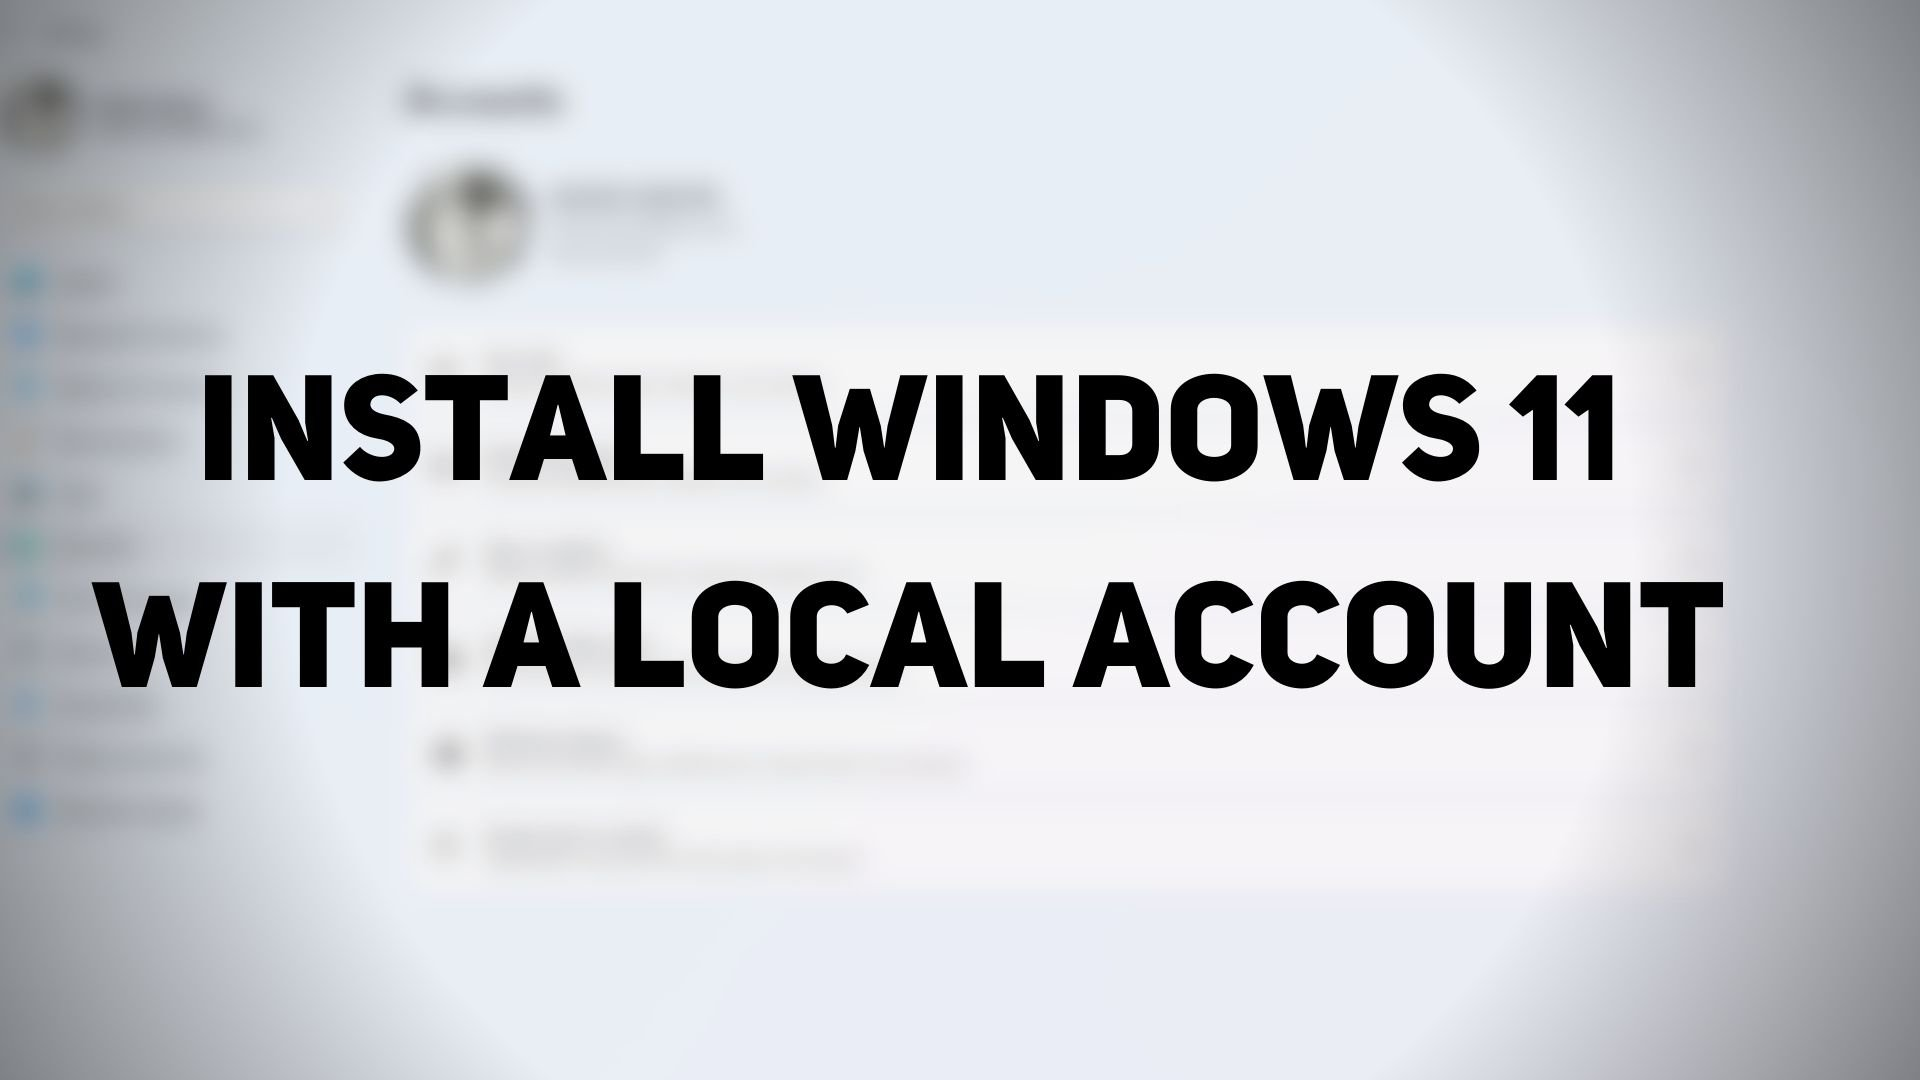 How to install Windows 11 with a Local Account Install-Windows-11-with-a-Local-Account.jpg